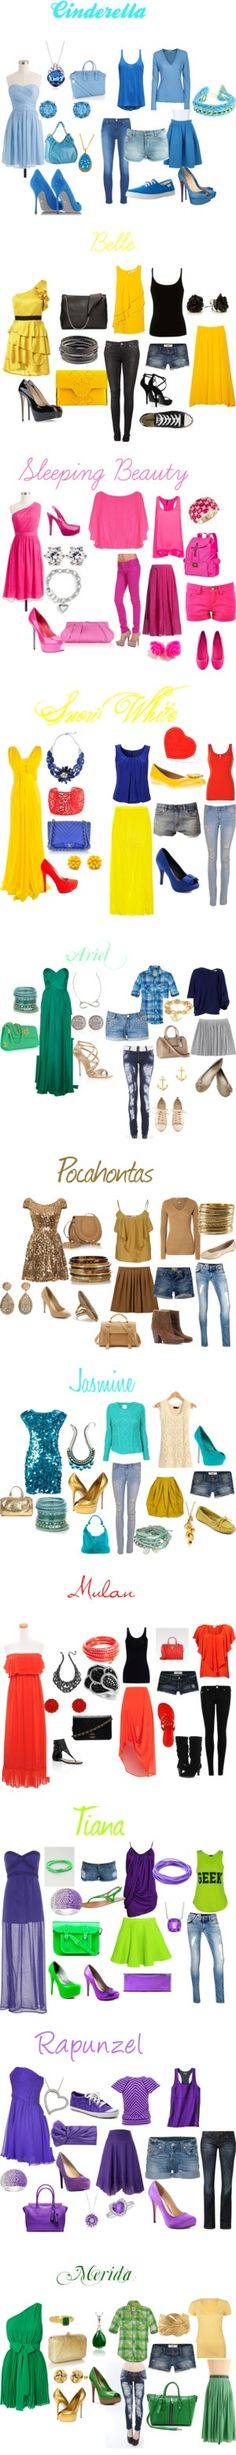 If you wanna buy me clothes, look here for inspiration: http://www.pinterest.com/tatsyskr/my-type-of-fashion-3/ :)